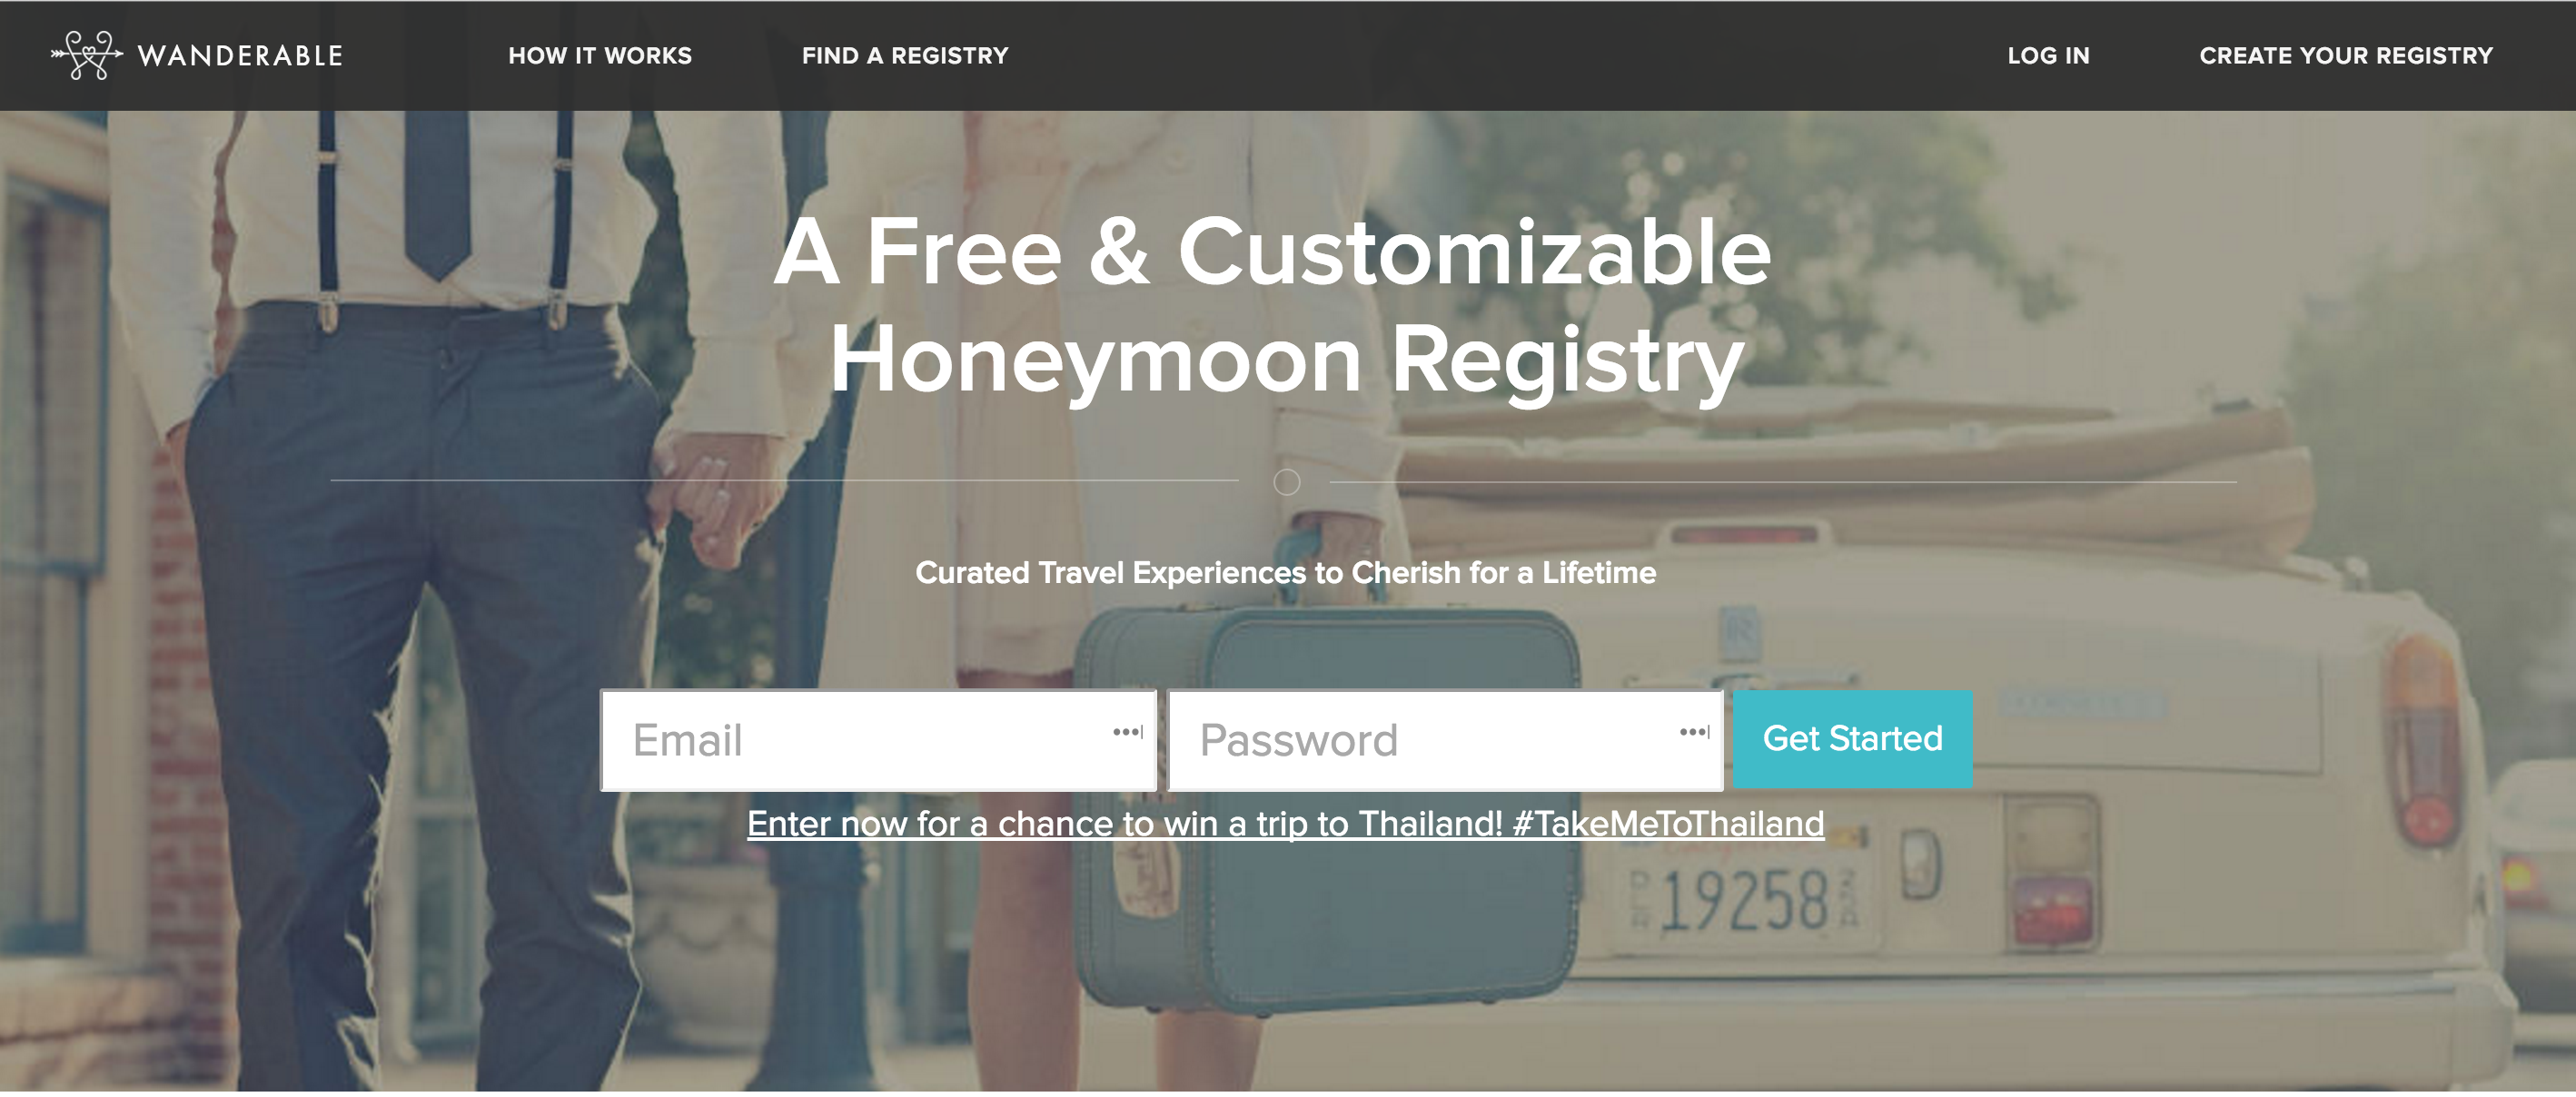 Best honeymoon registry